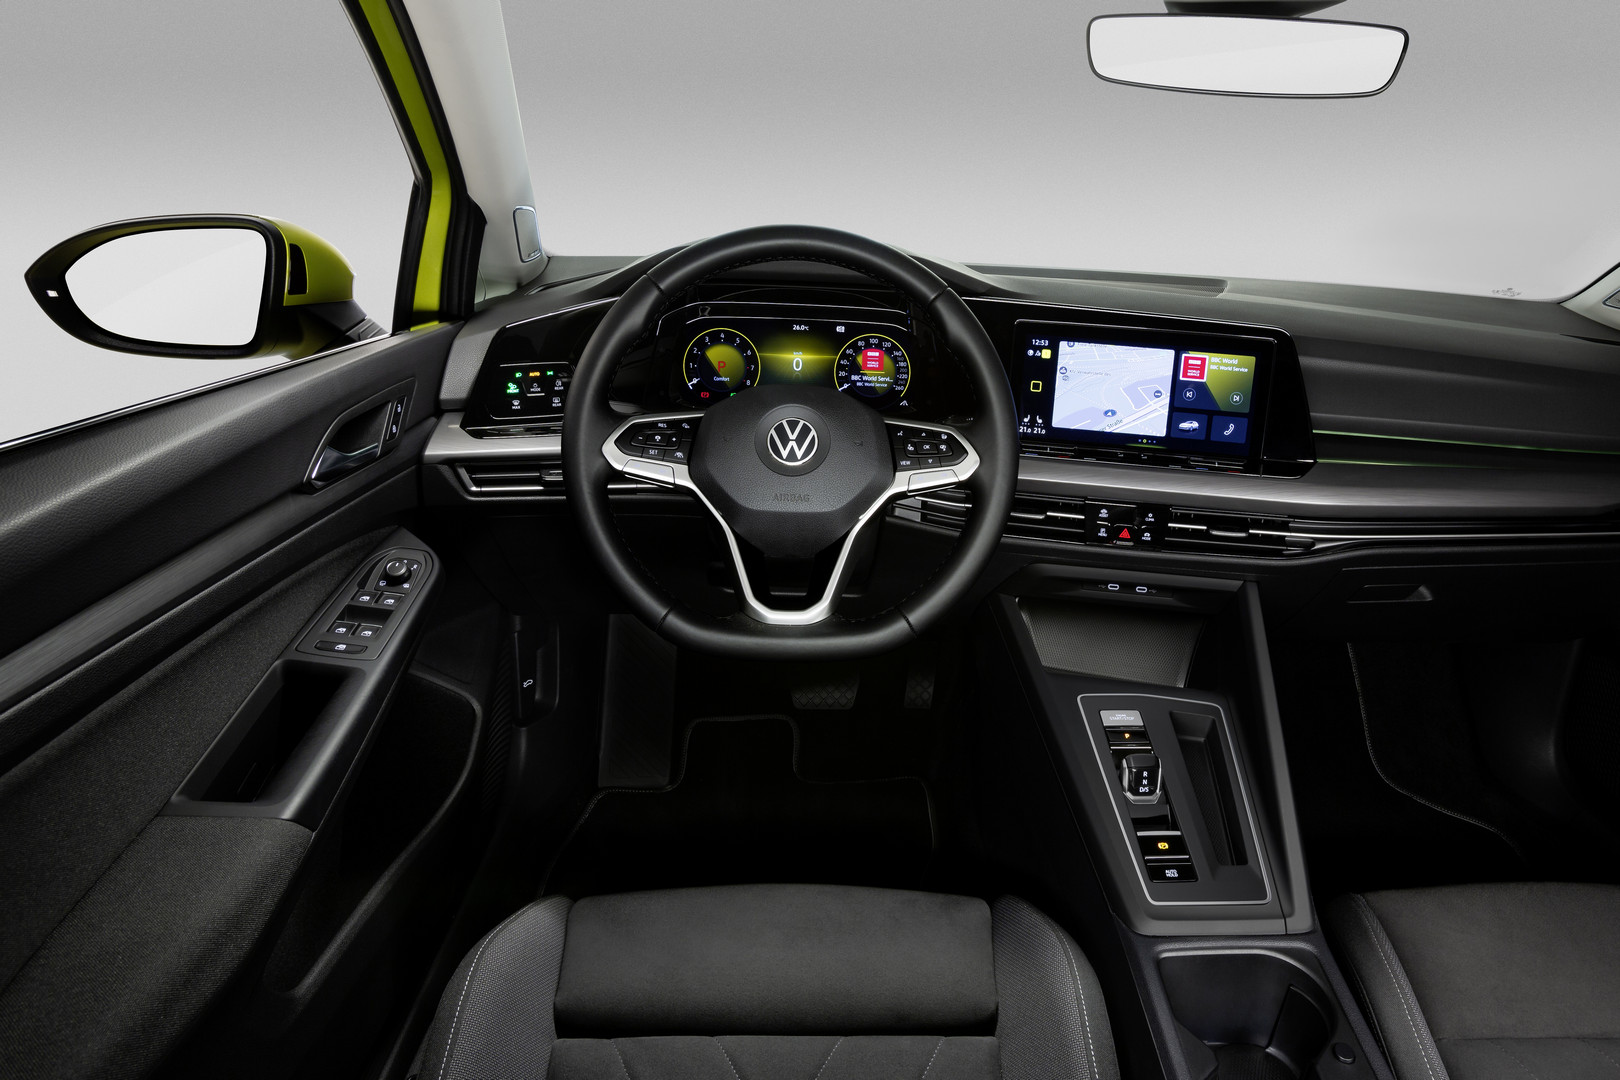 2020 VW Golf 8 Interior